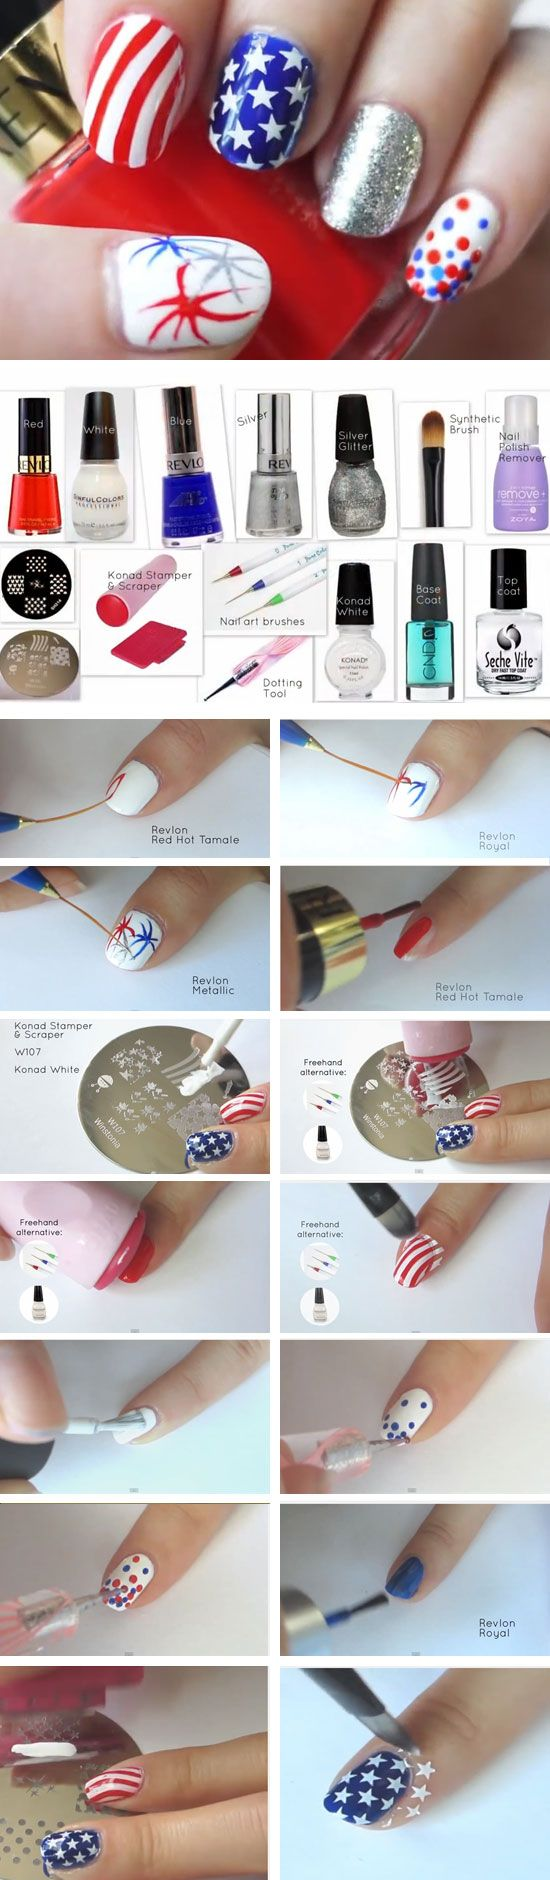 Konad Stamping Fireworks | DIY Memorial Day Nails Red White Blue | Cute July 4th Nails for Kids